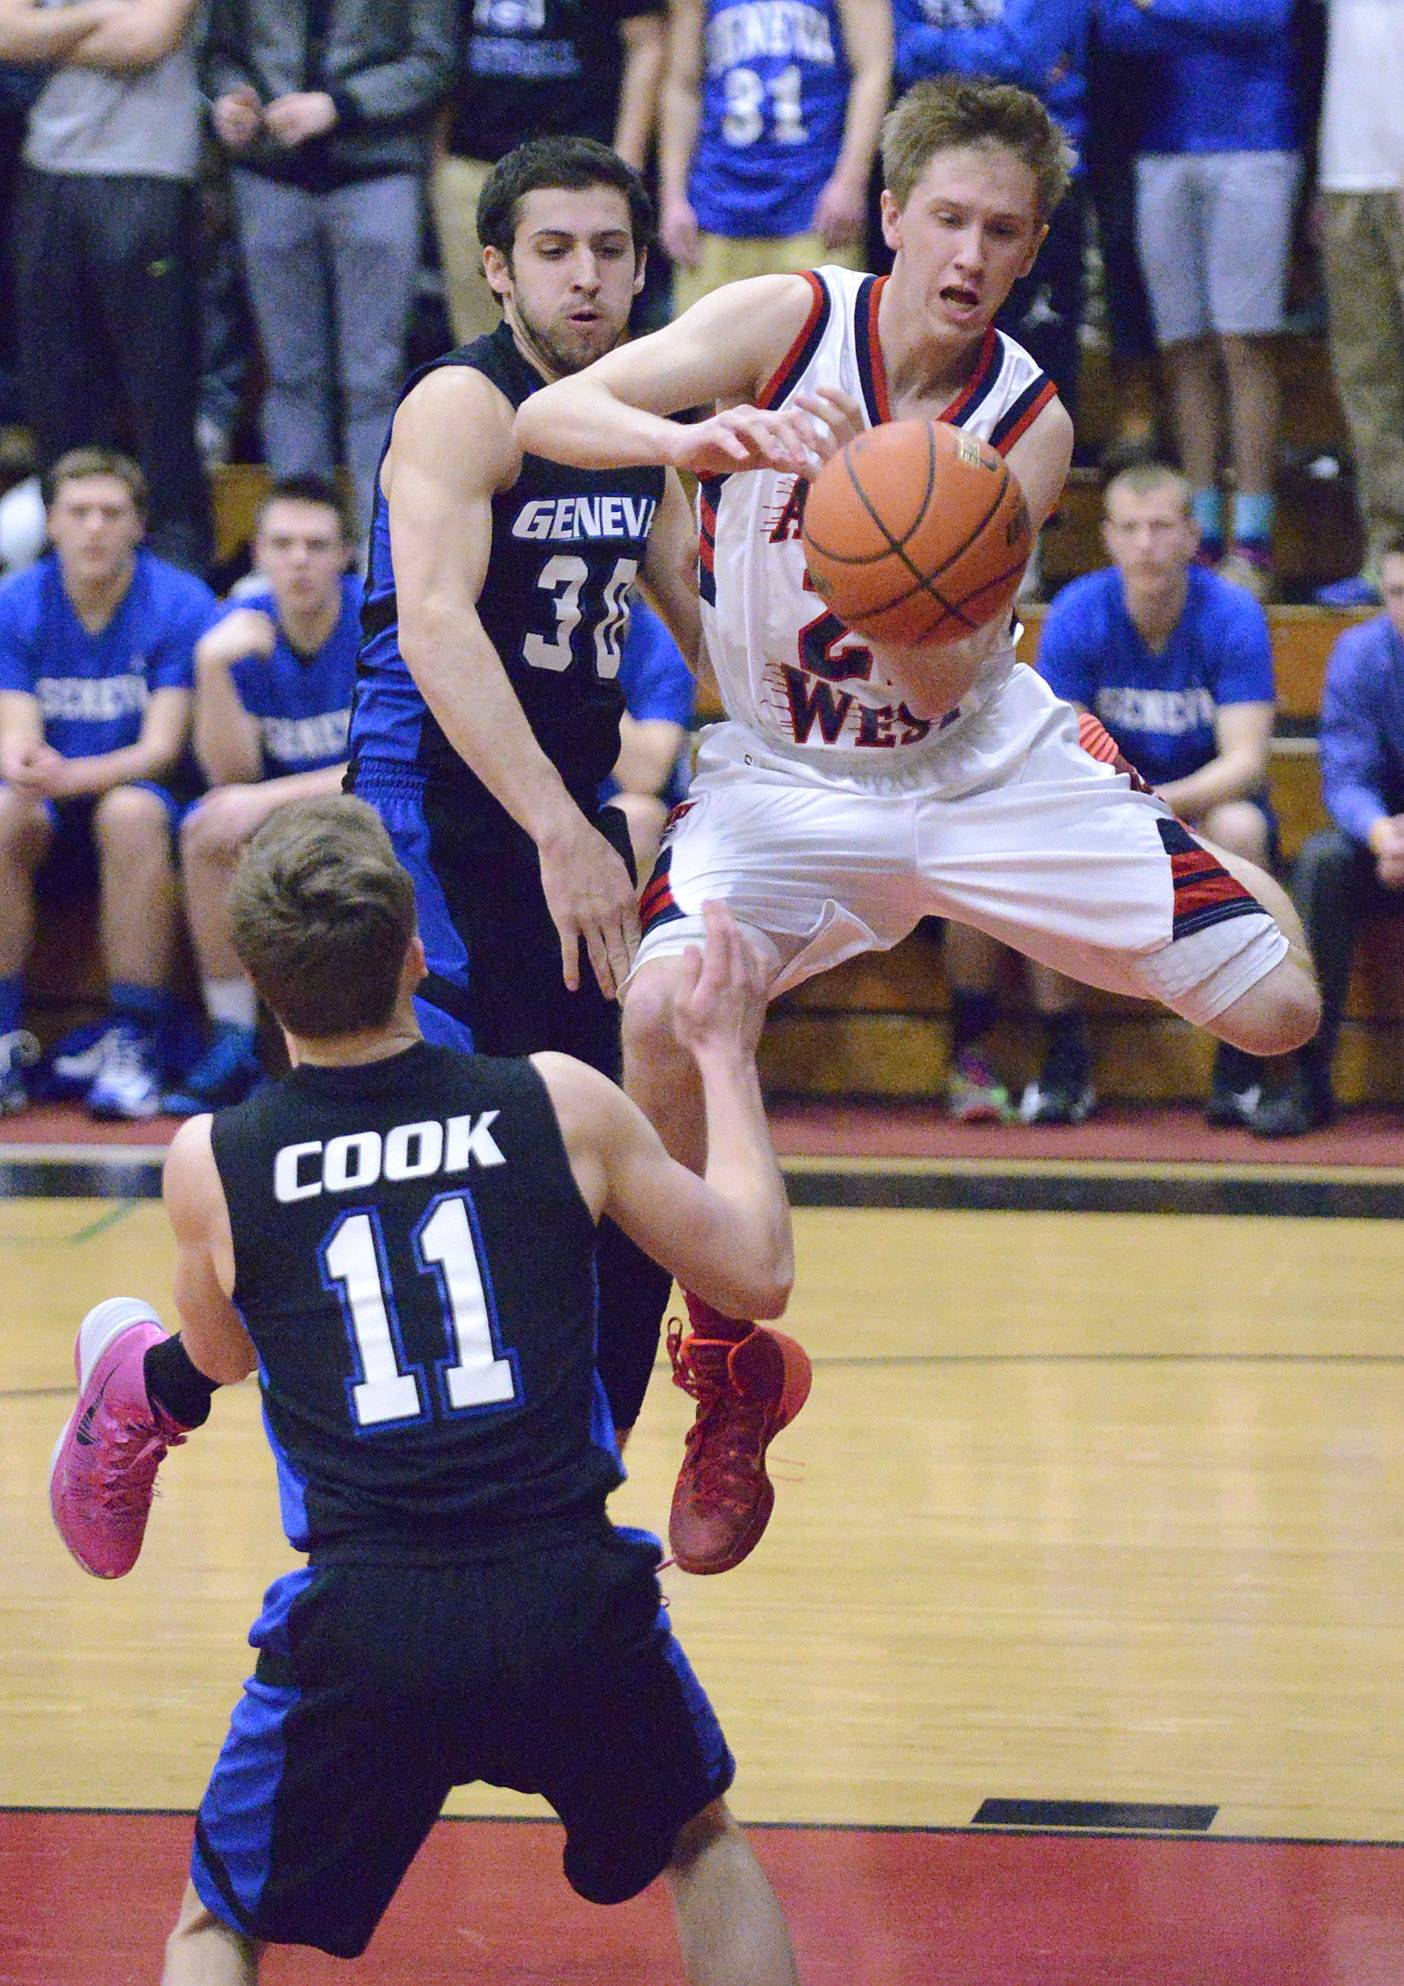 West Aurora's Tommy Koth grabs a rebound ahead of Geneva's Cameron Cook and Christopher Parrilli in the first quarter.